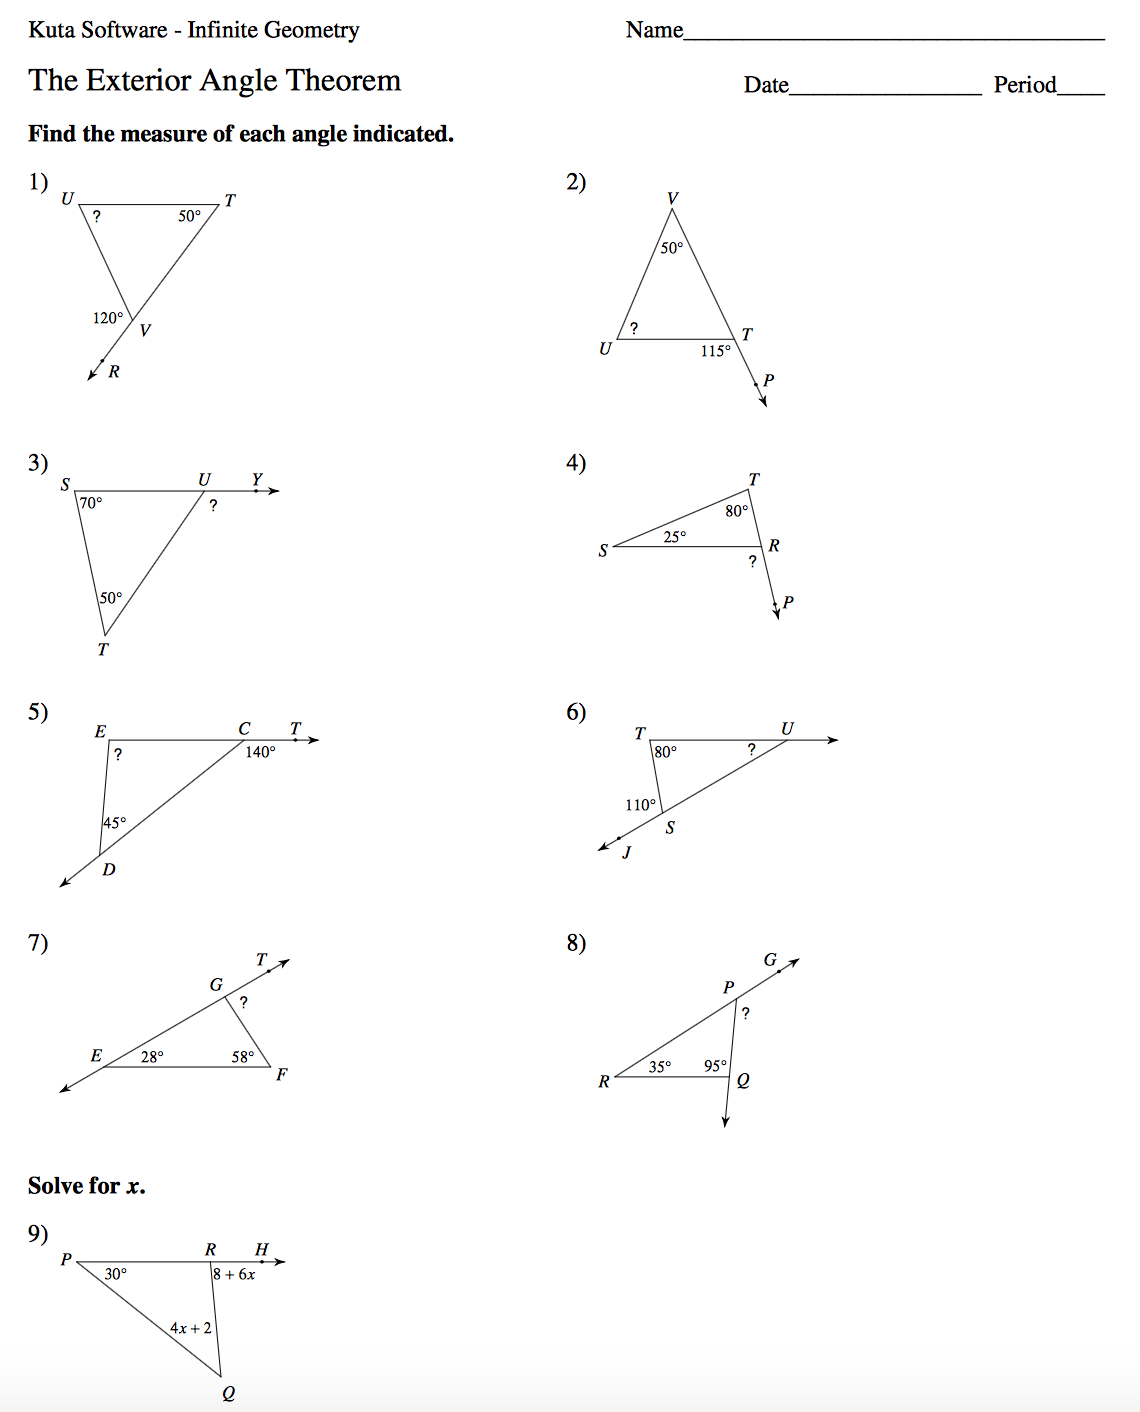 Free Worksheet Exterior Angle Theorem Worksheet geometry mrs murks math class angles in a triangle worksheet page 1 2 3 challenge 4 and if you have question about the homework that was assigned on